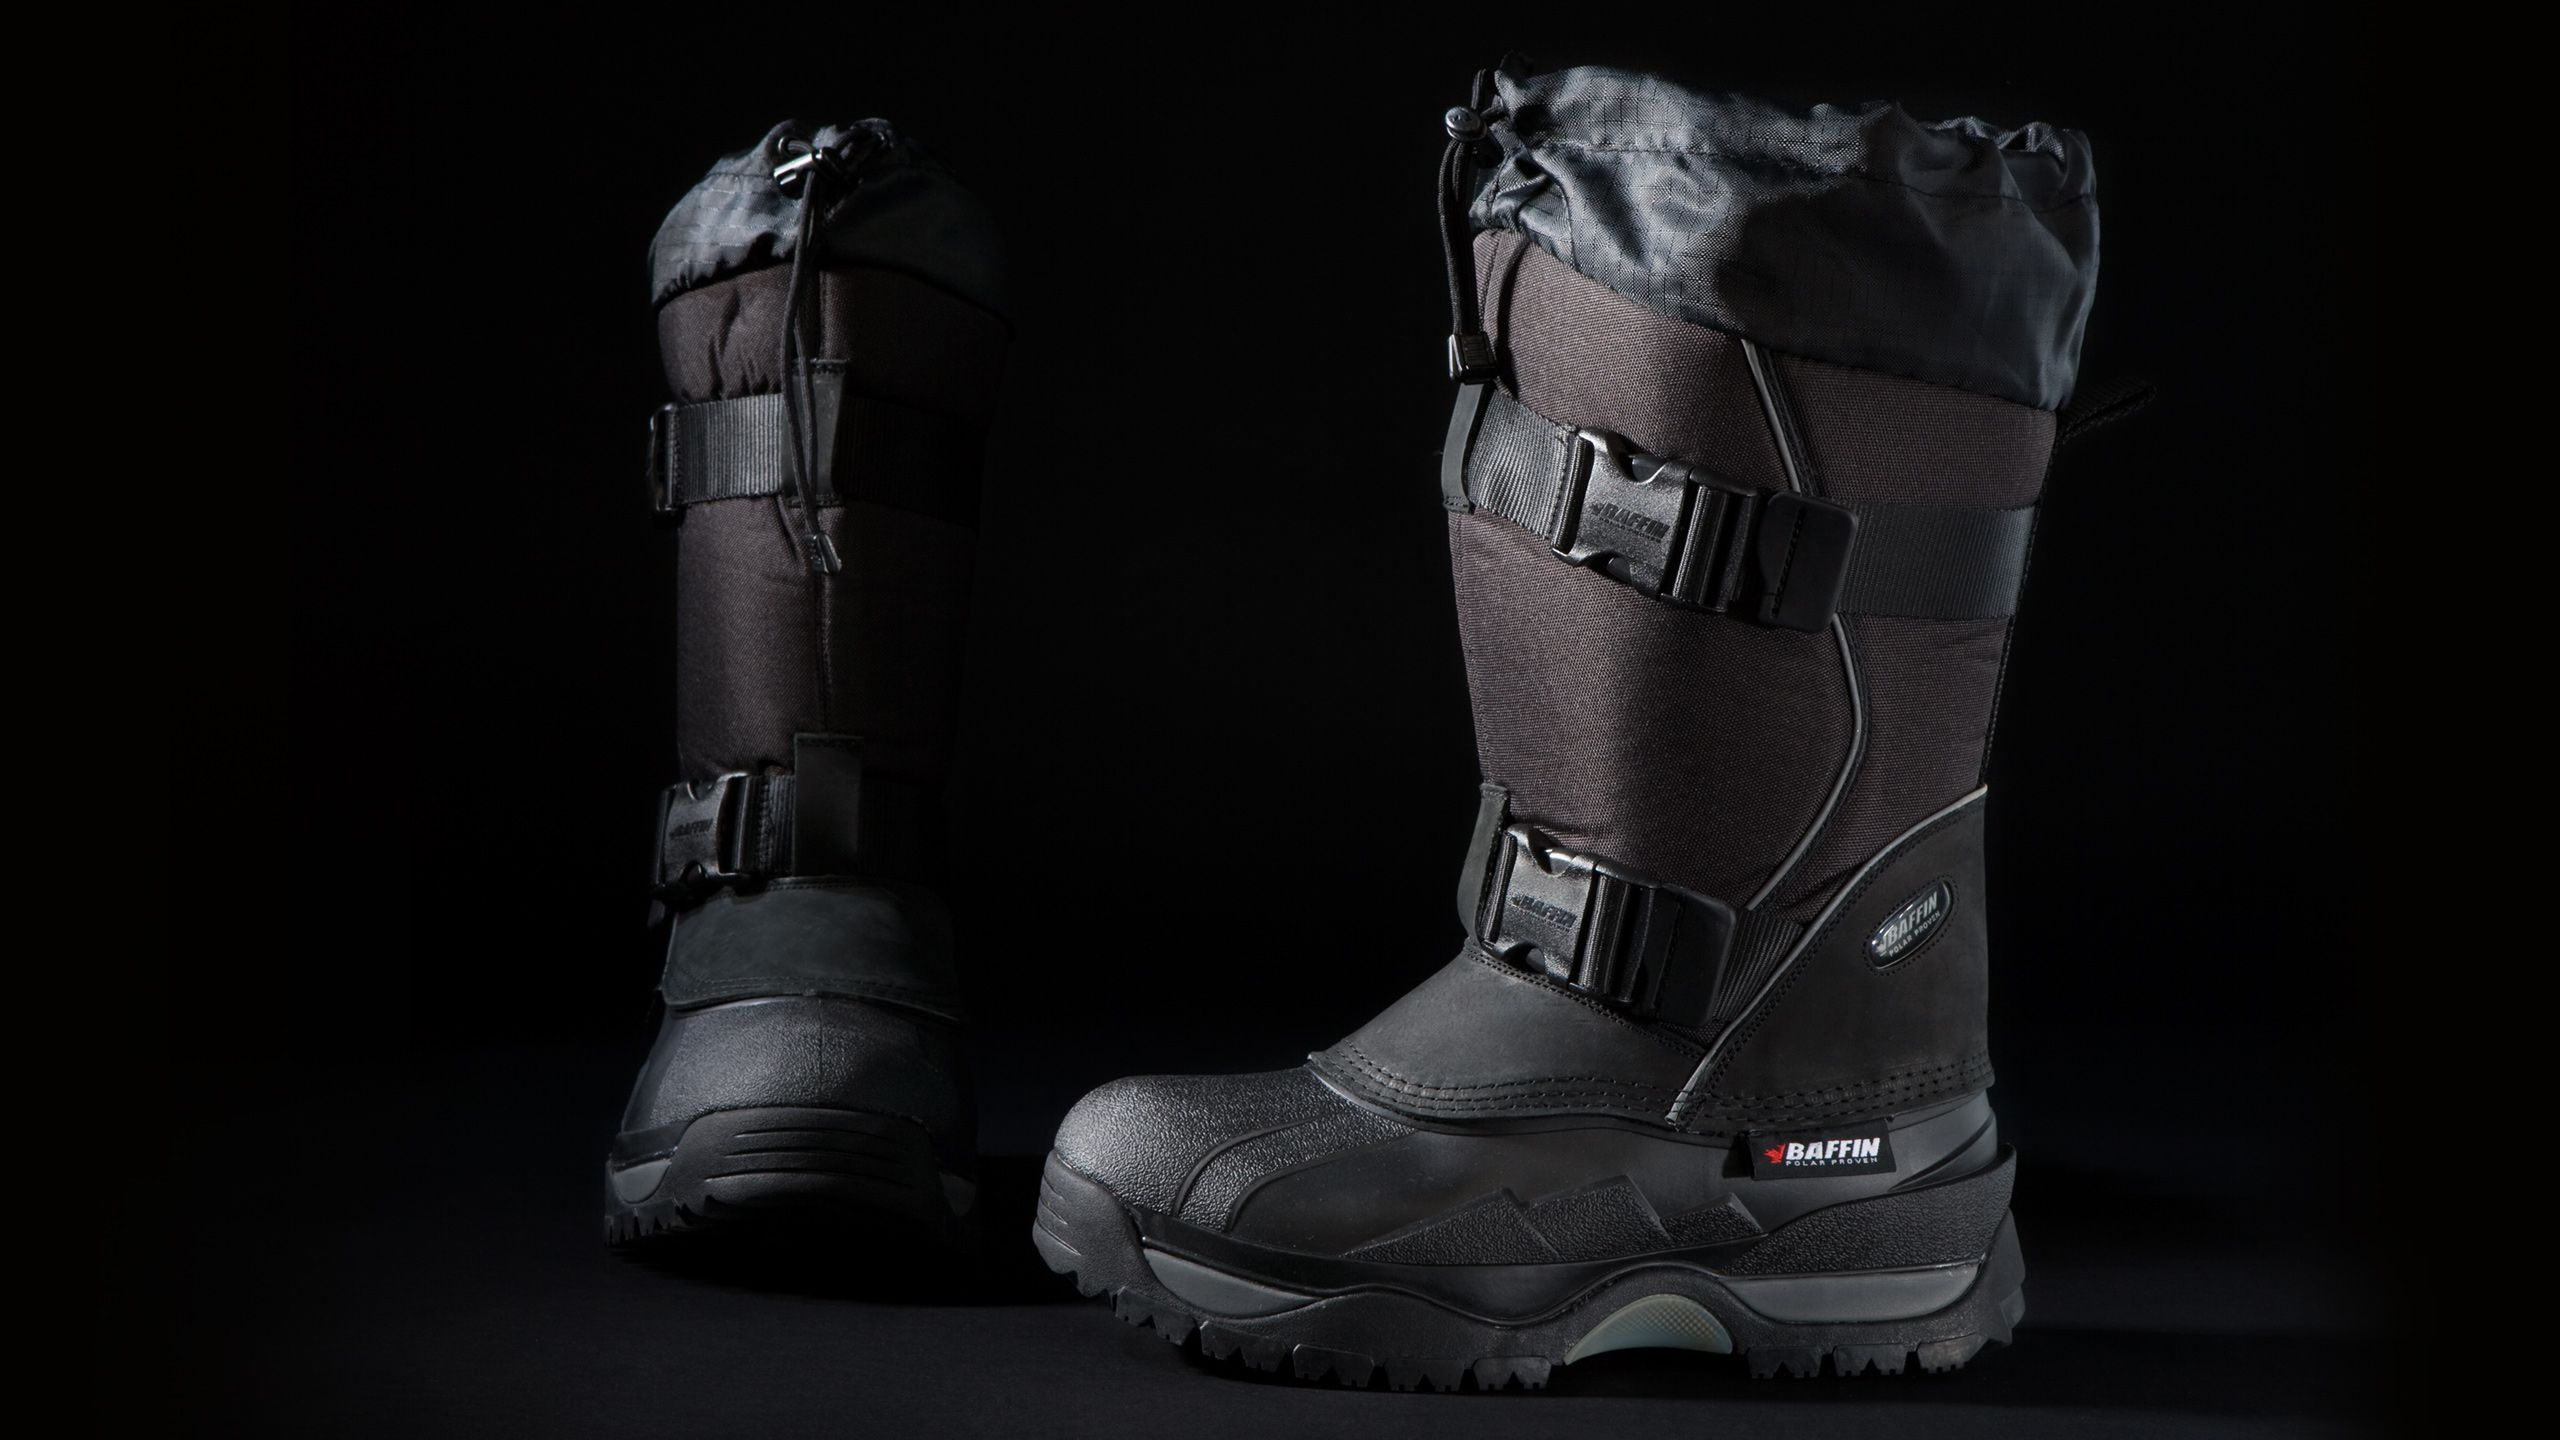 baffin extreme weather boots